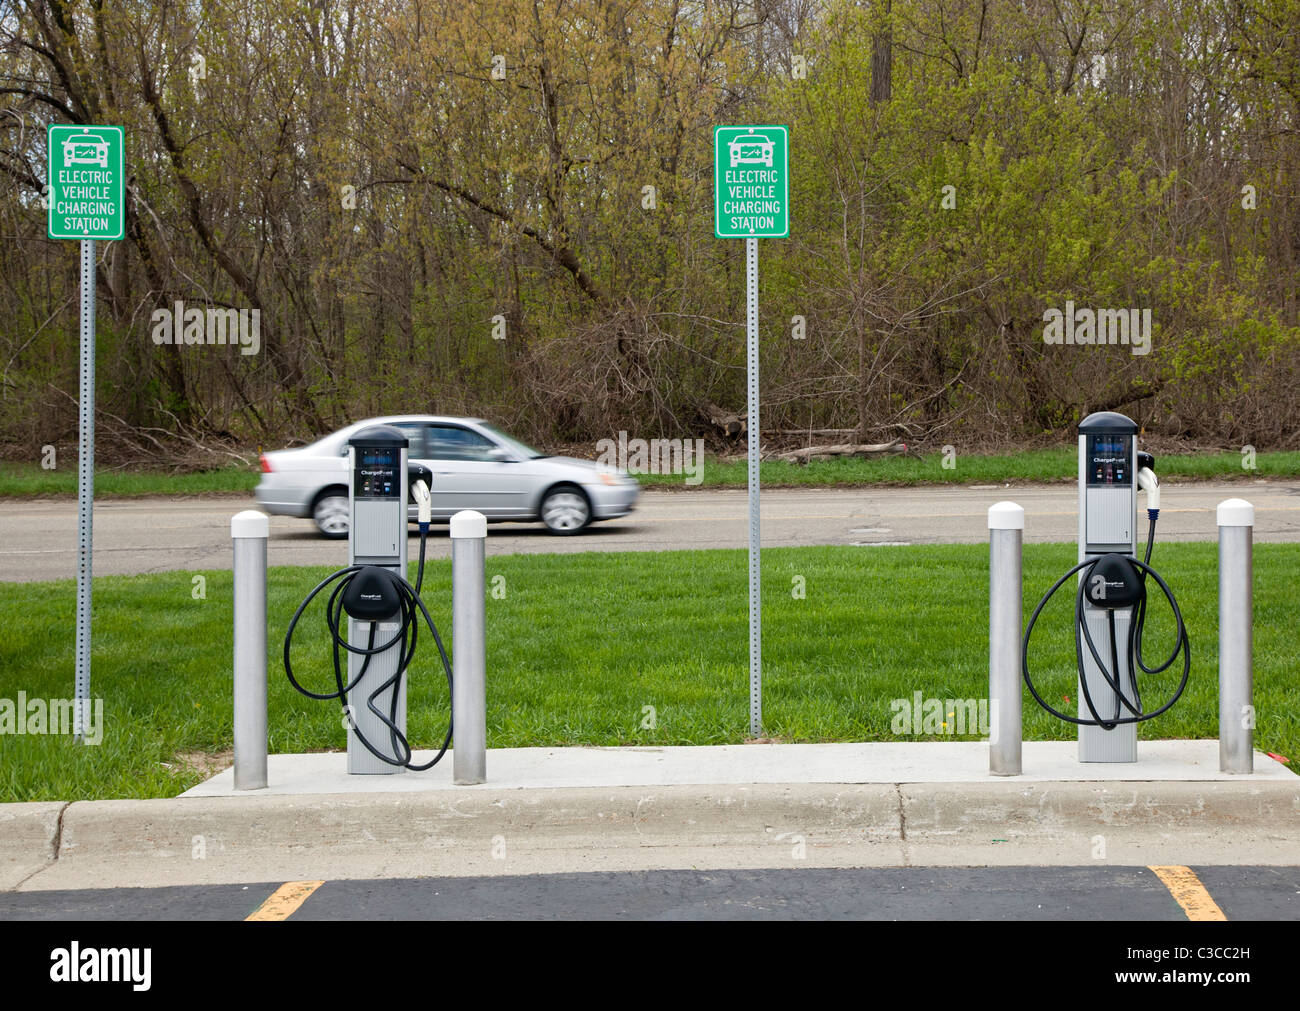 Livonia, Michigan - An electric vehicle charging station on the campus of Schoolcraft College. - Stock Image